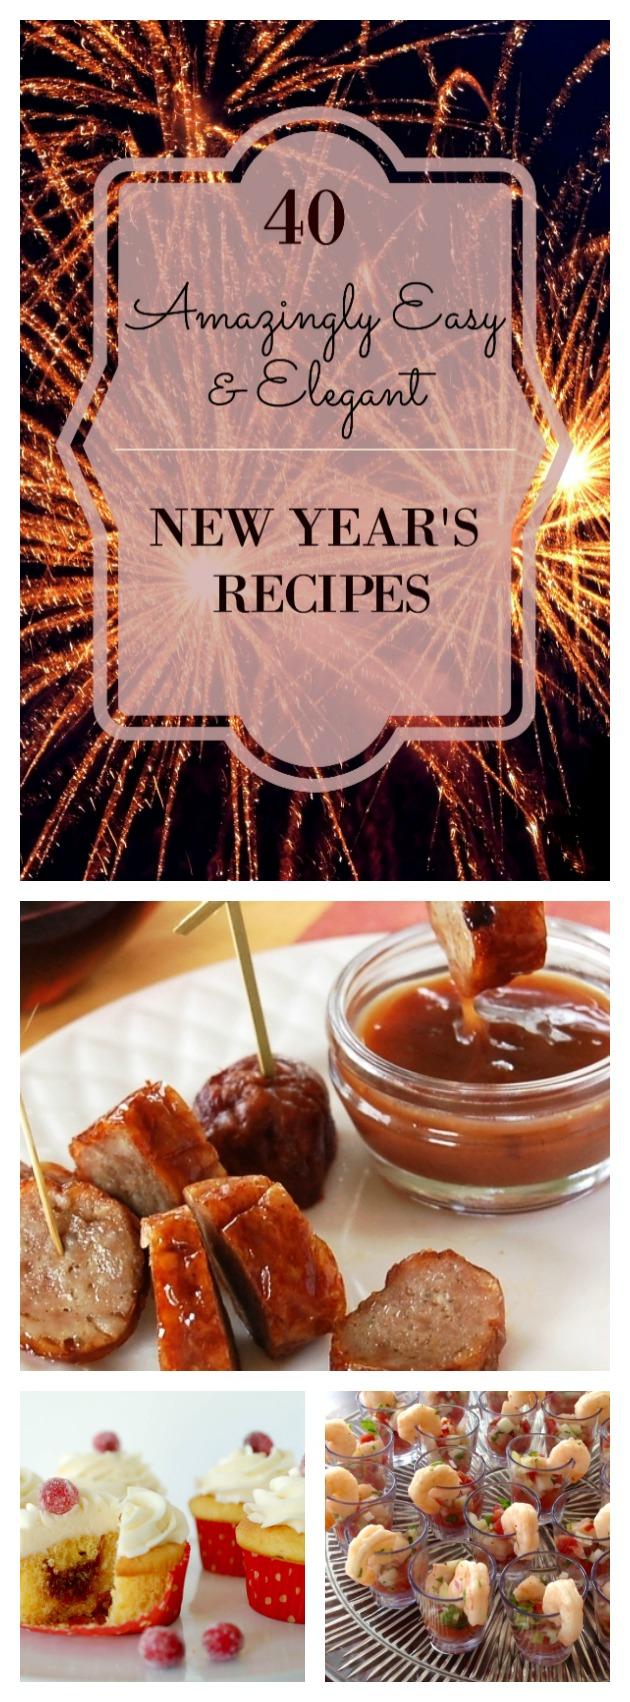 40 Amazingly Easy & Elegant New Year's Recipes